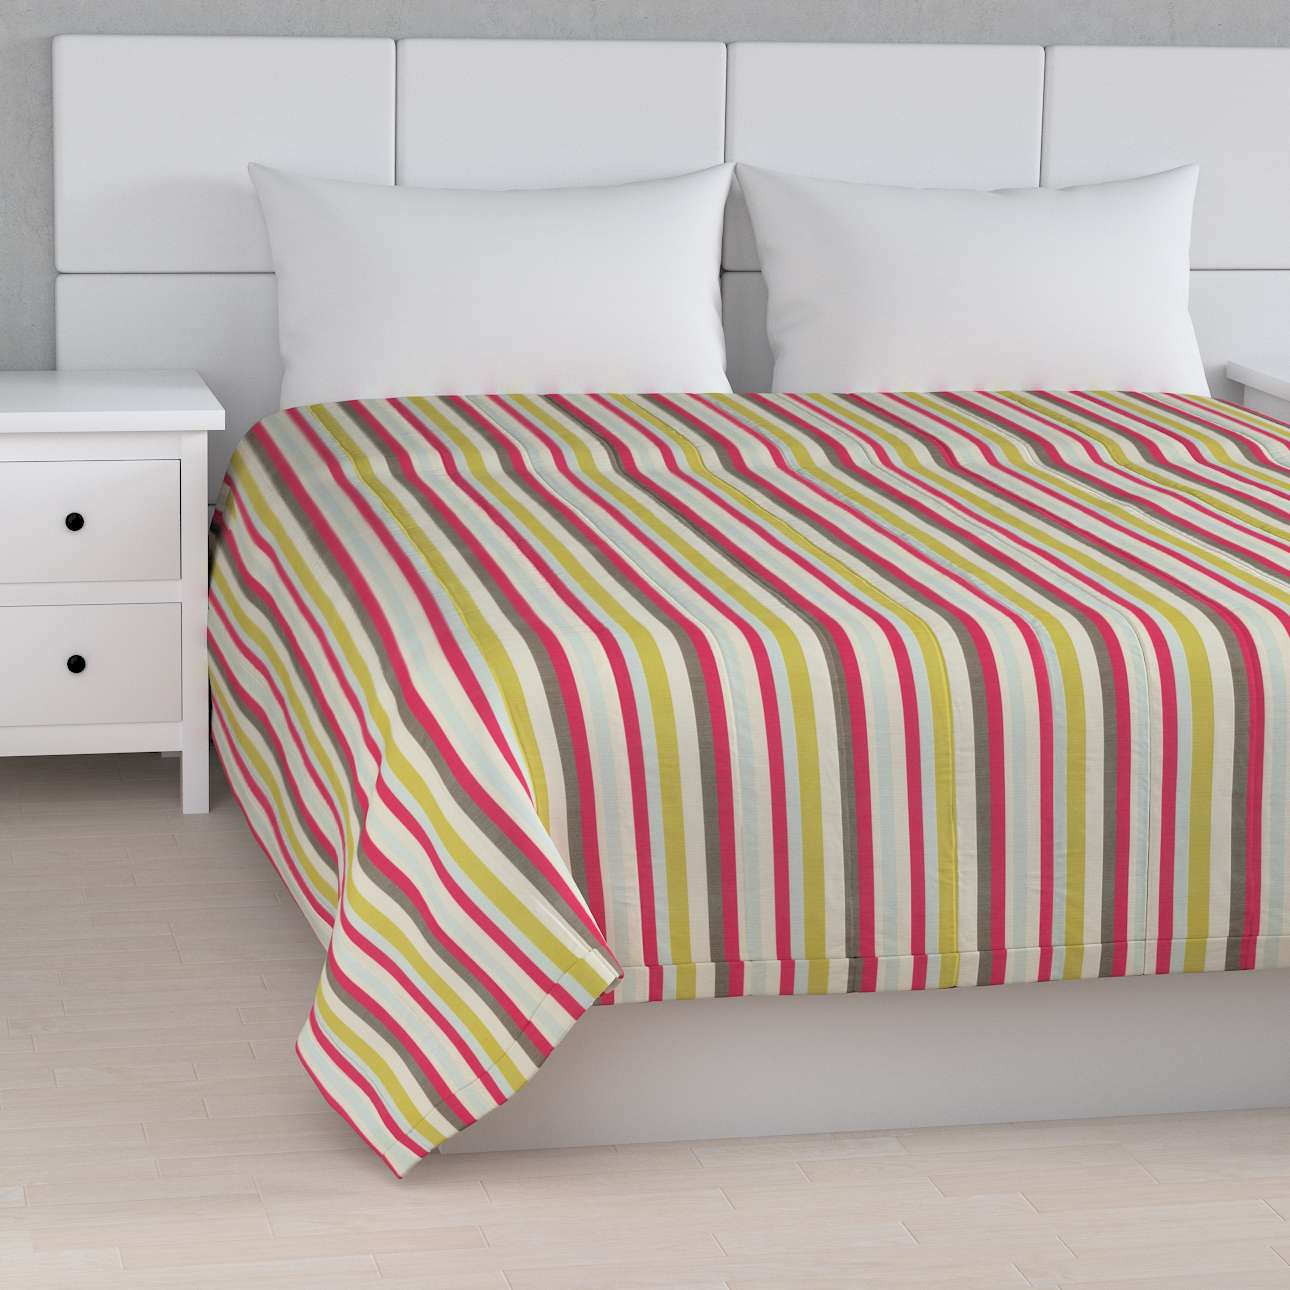 Stripe quilted throw in collection Flowers, fabric: 140-81